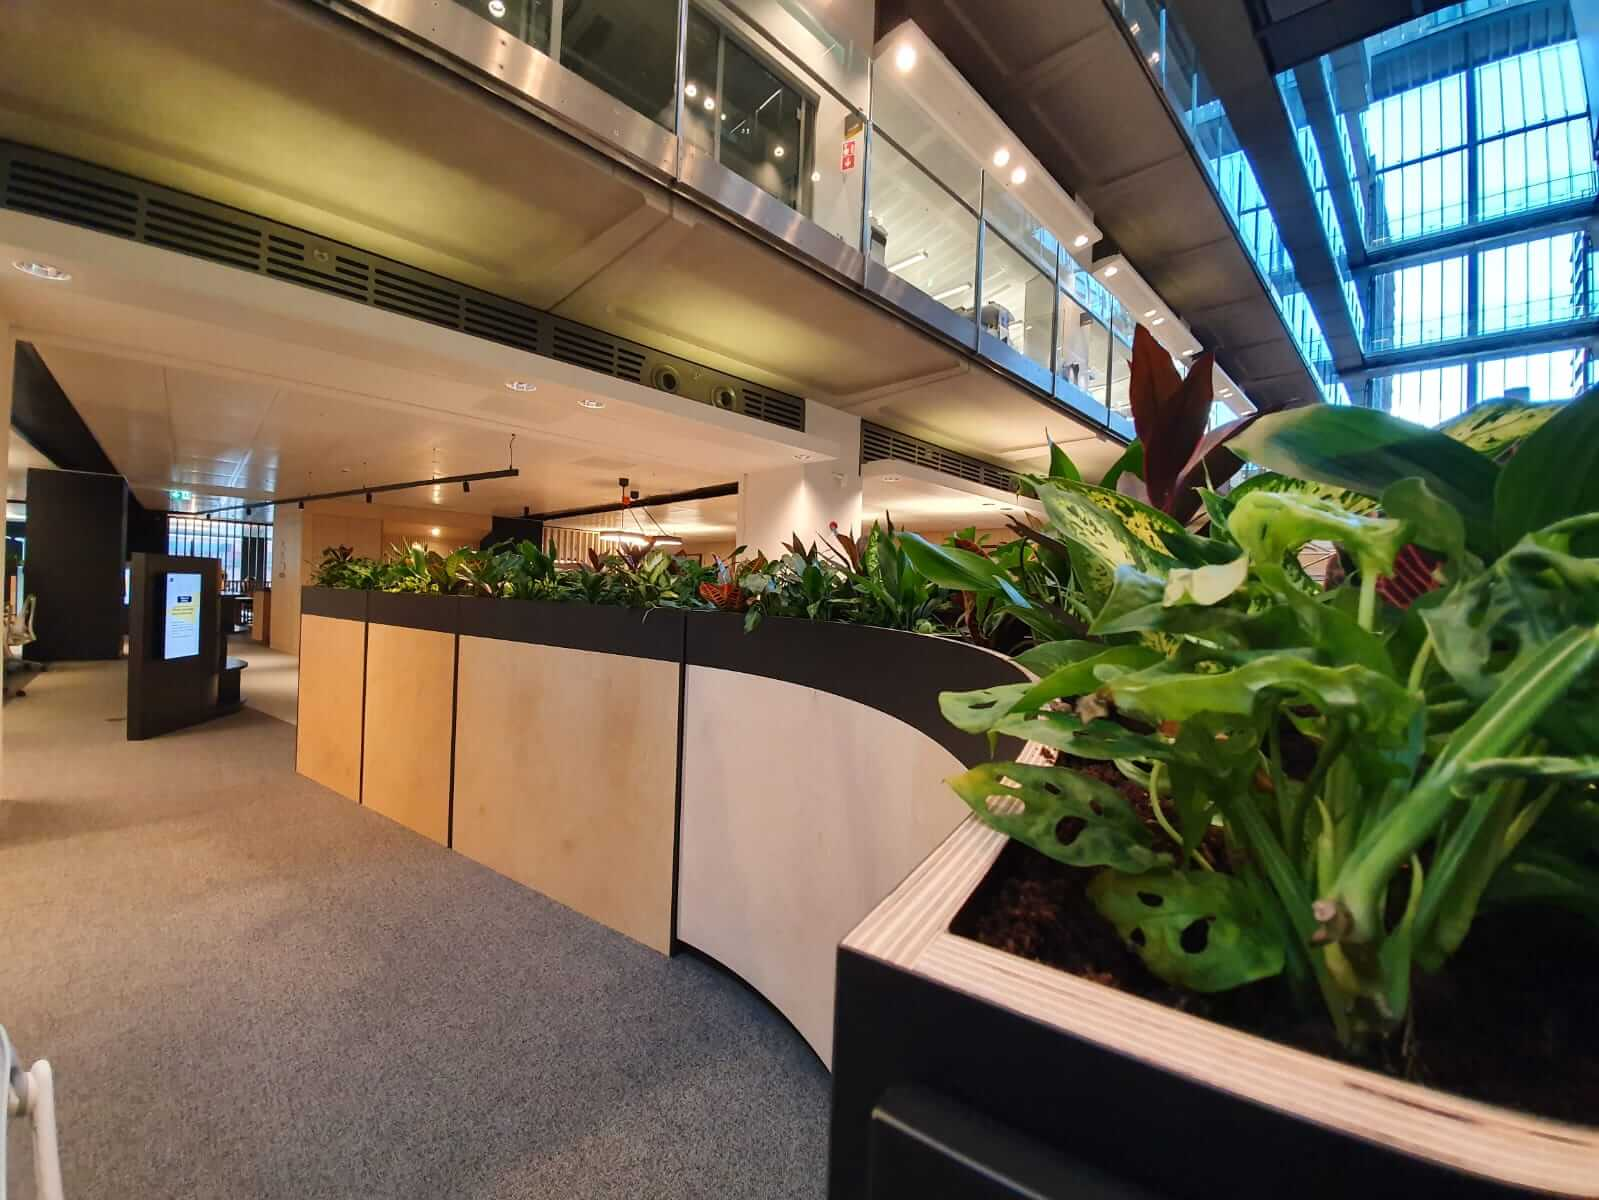 communal office area with plants